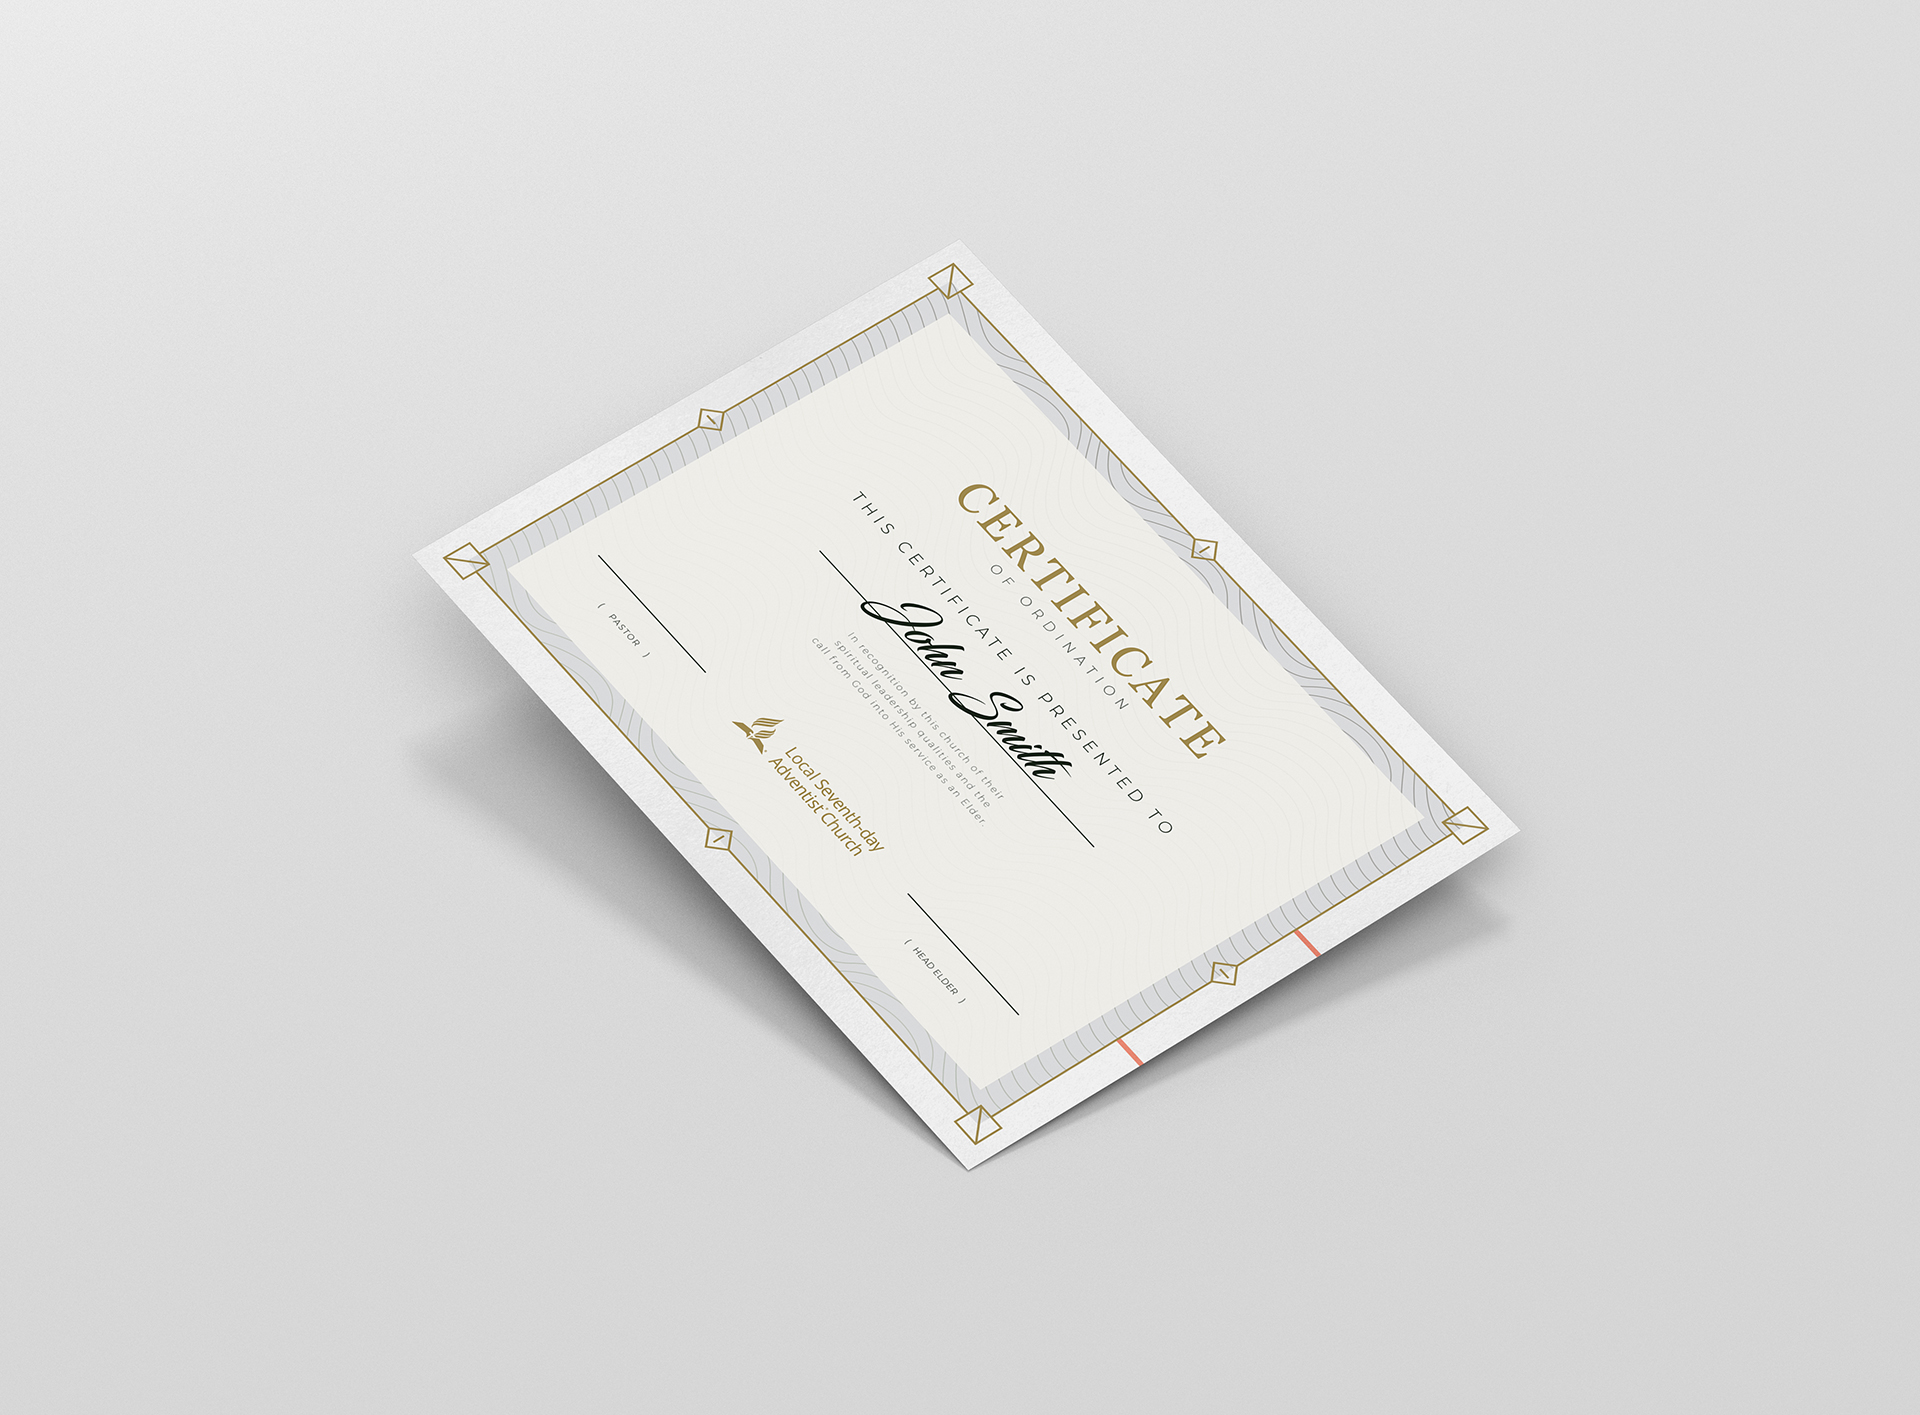 picture relating to Printable Ordination Certificate titled Printable Elder Deacon Ordination Certification Gulf